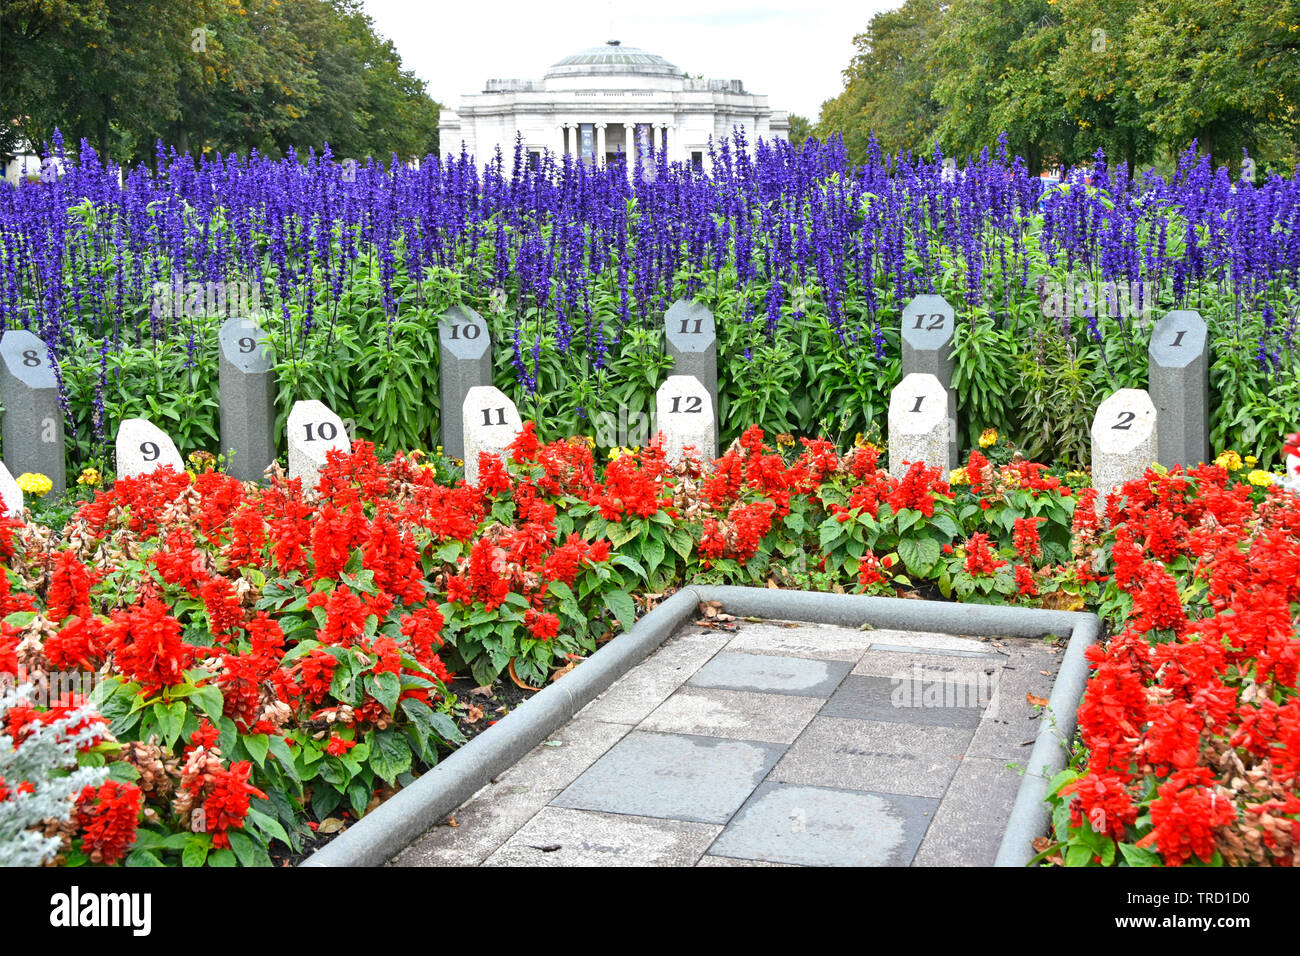 Port Sunlight village Diamond garden view of red salvia & blue delphinium flowers planted around an  Analemmatic sundial Wirral Cheshire England UK - Stock Image